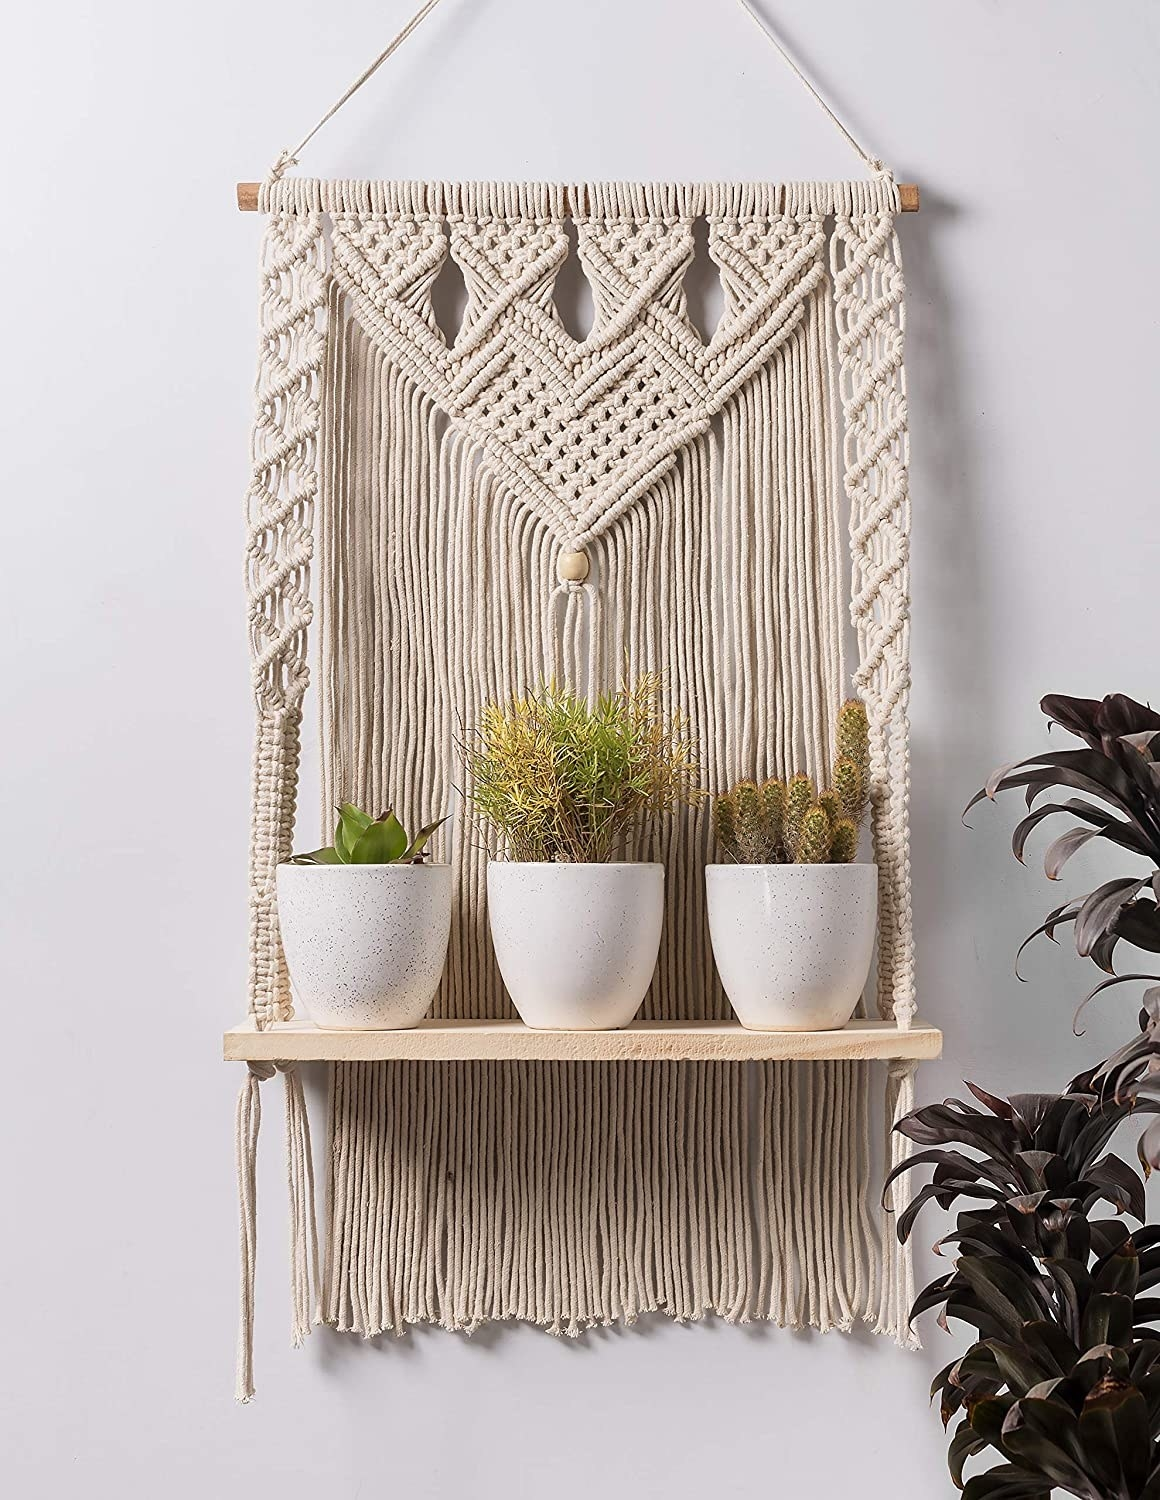 A handwoven Macrame wall hanging shelf with plants on it